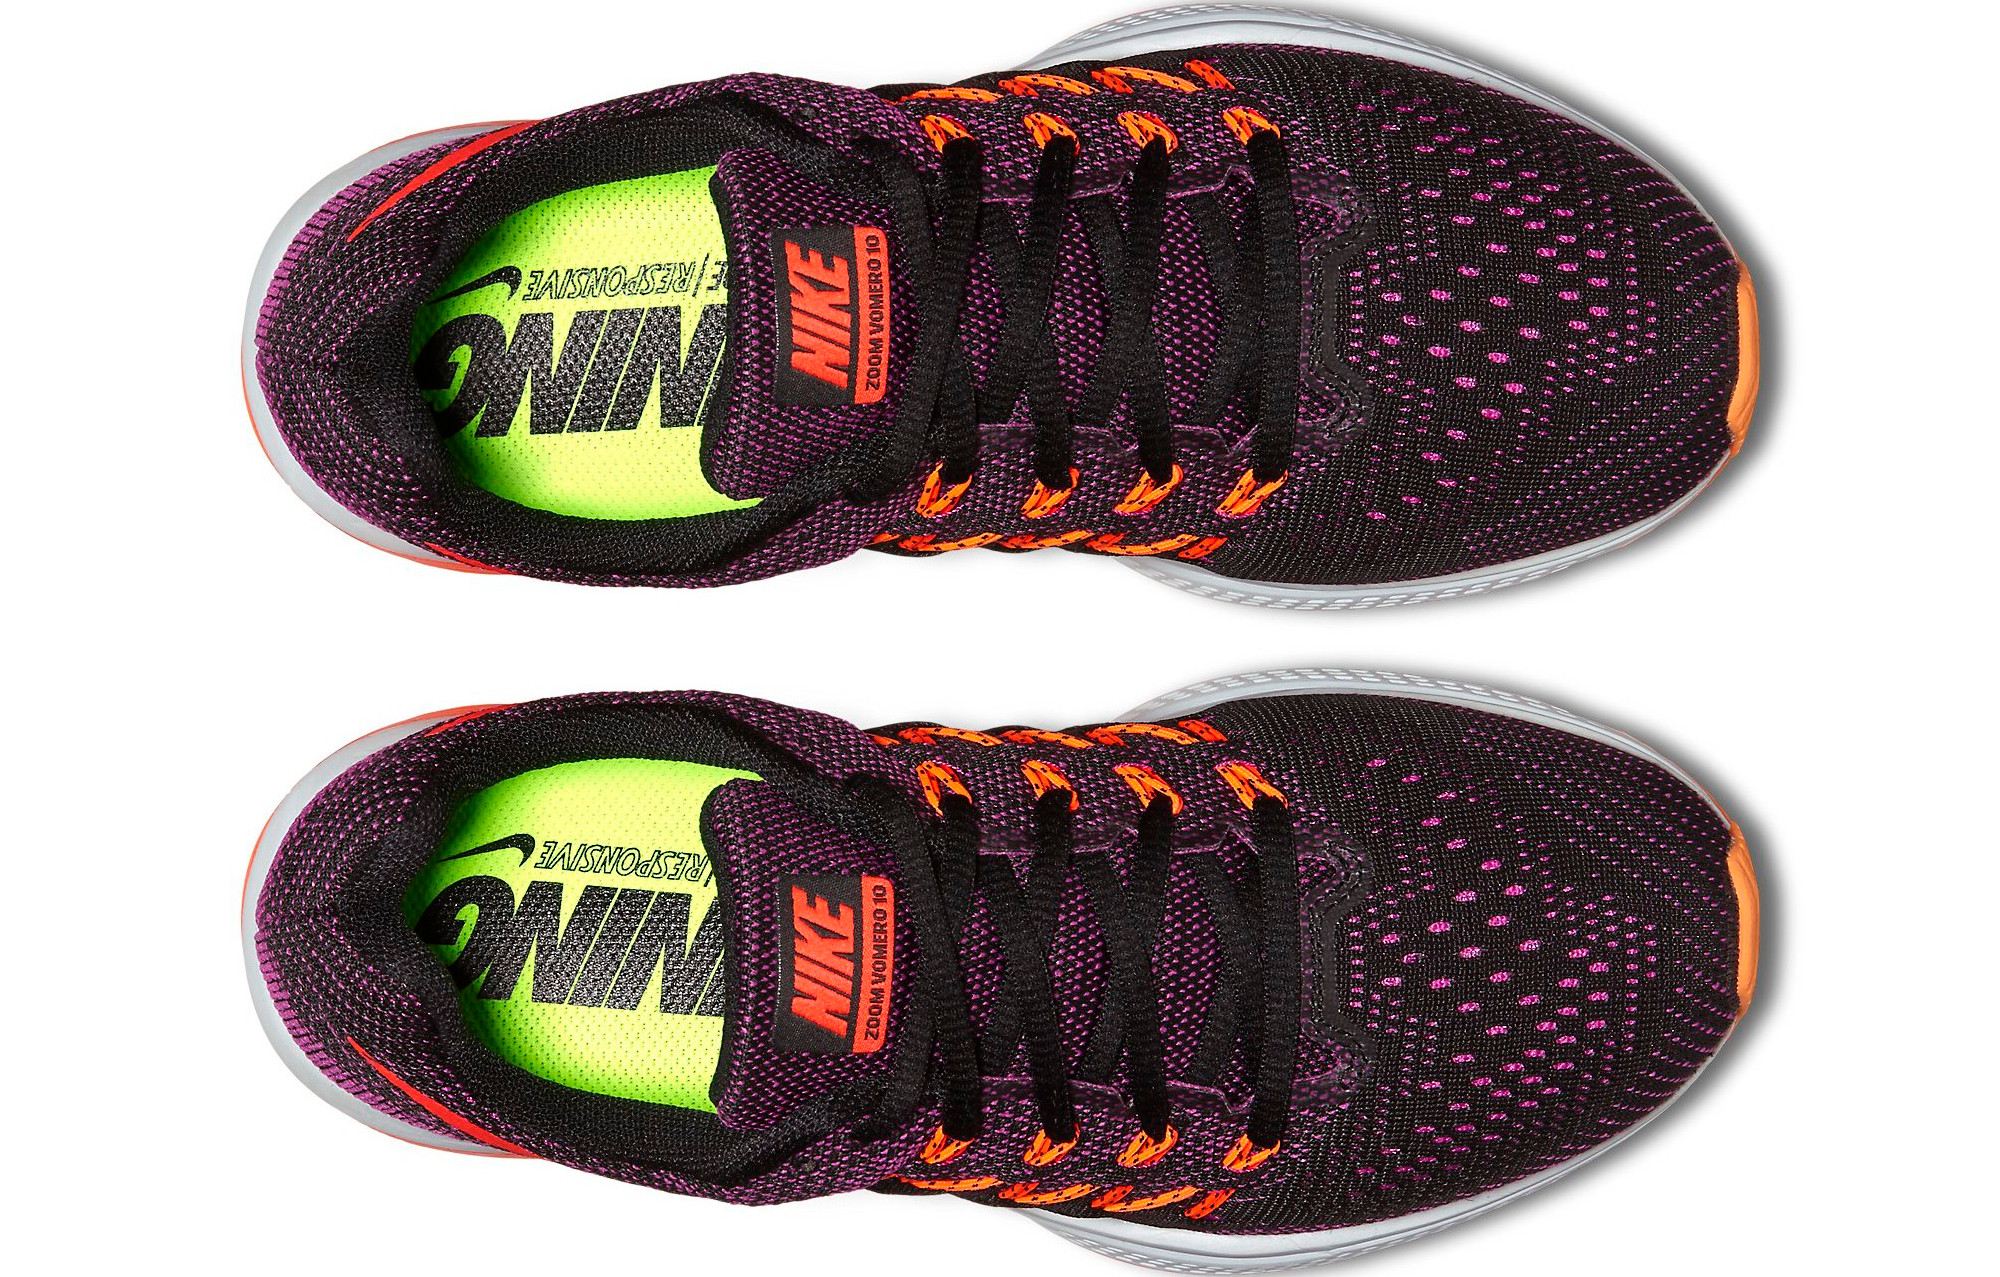 new products 4bff1 90e40 Chaussures de Running Femme Nike AIR ZOOM VOMERO 10 Violet   Noir   Orange